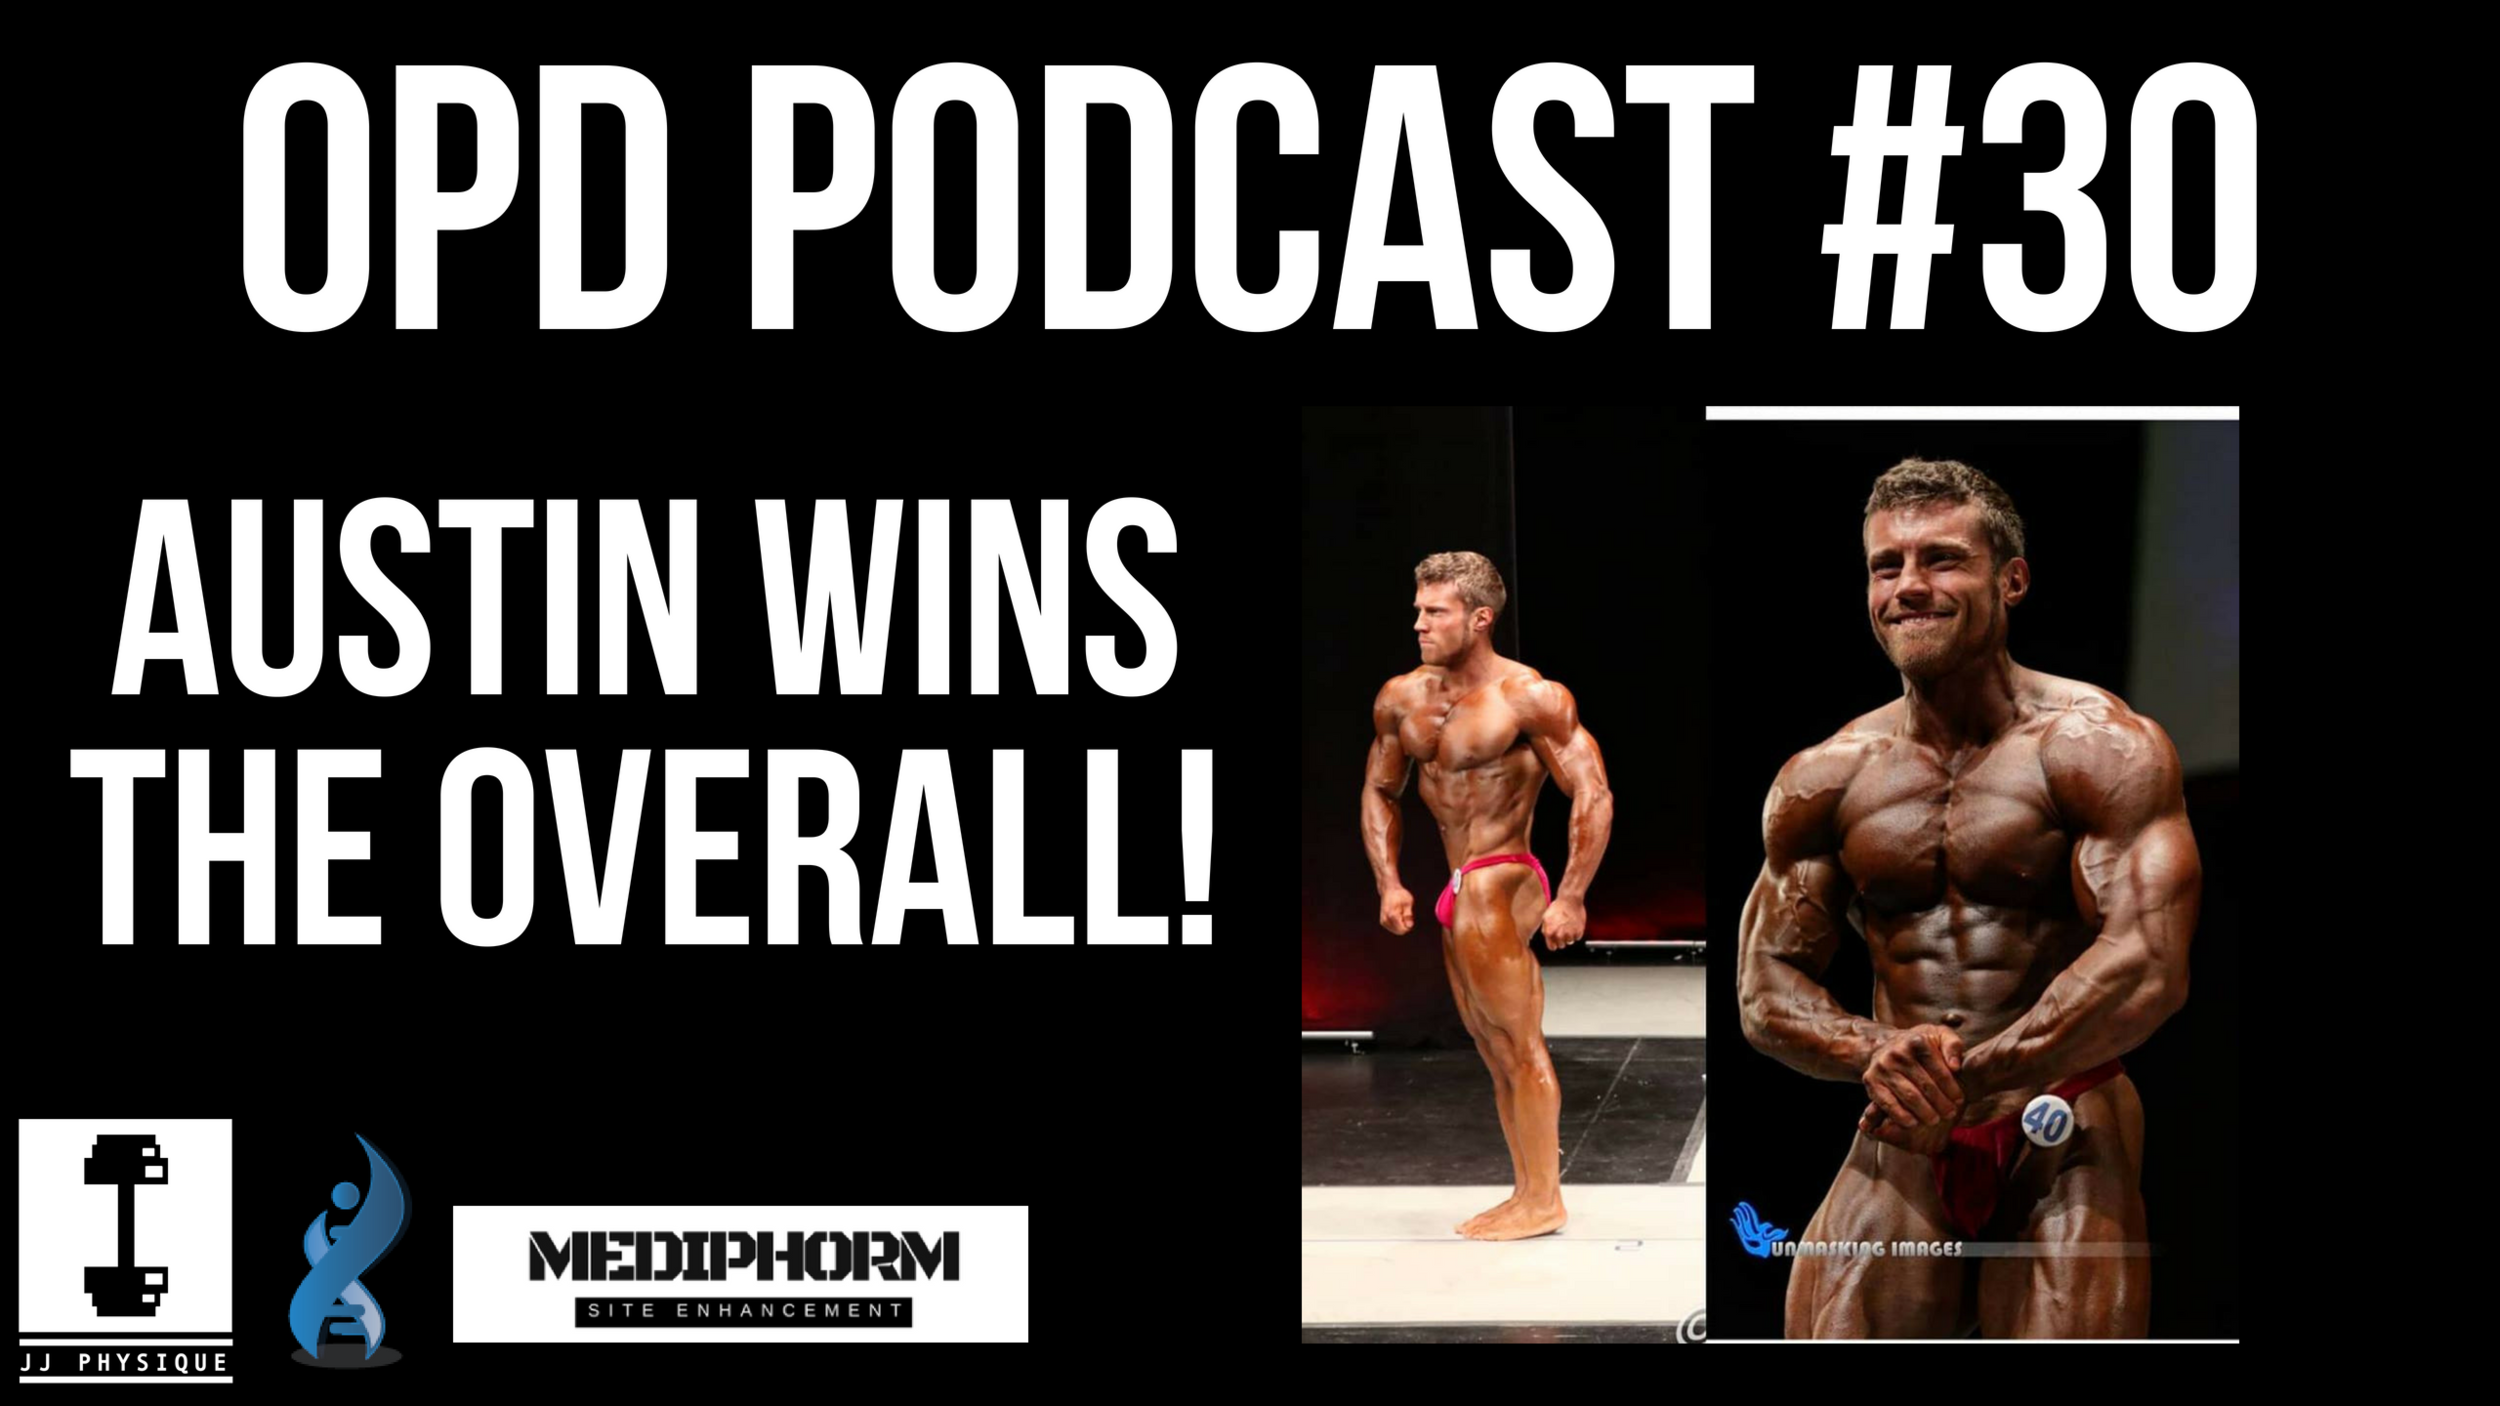 OPTIMAL PHYSIQUE DEVELOPMENTPODCAST (20).png